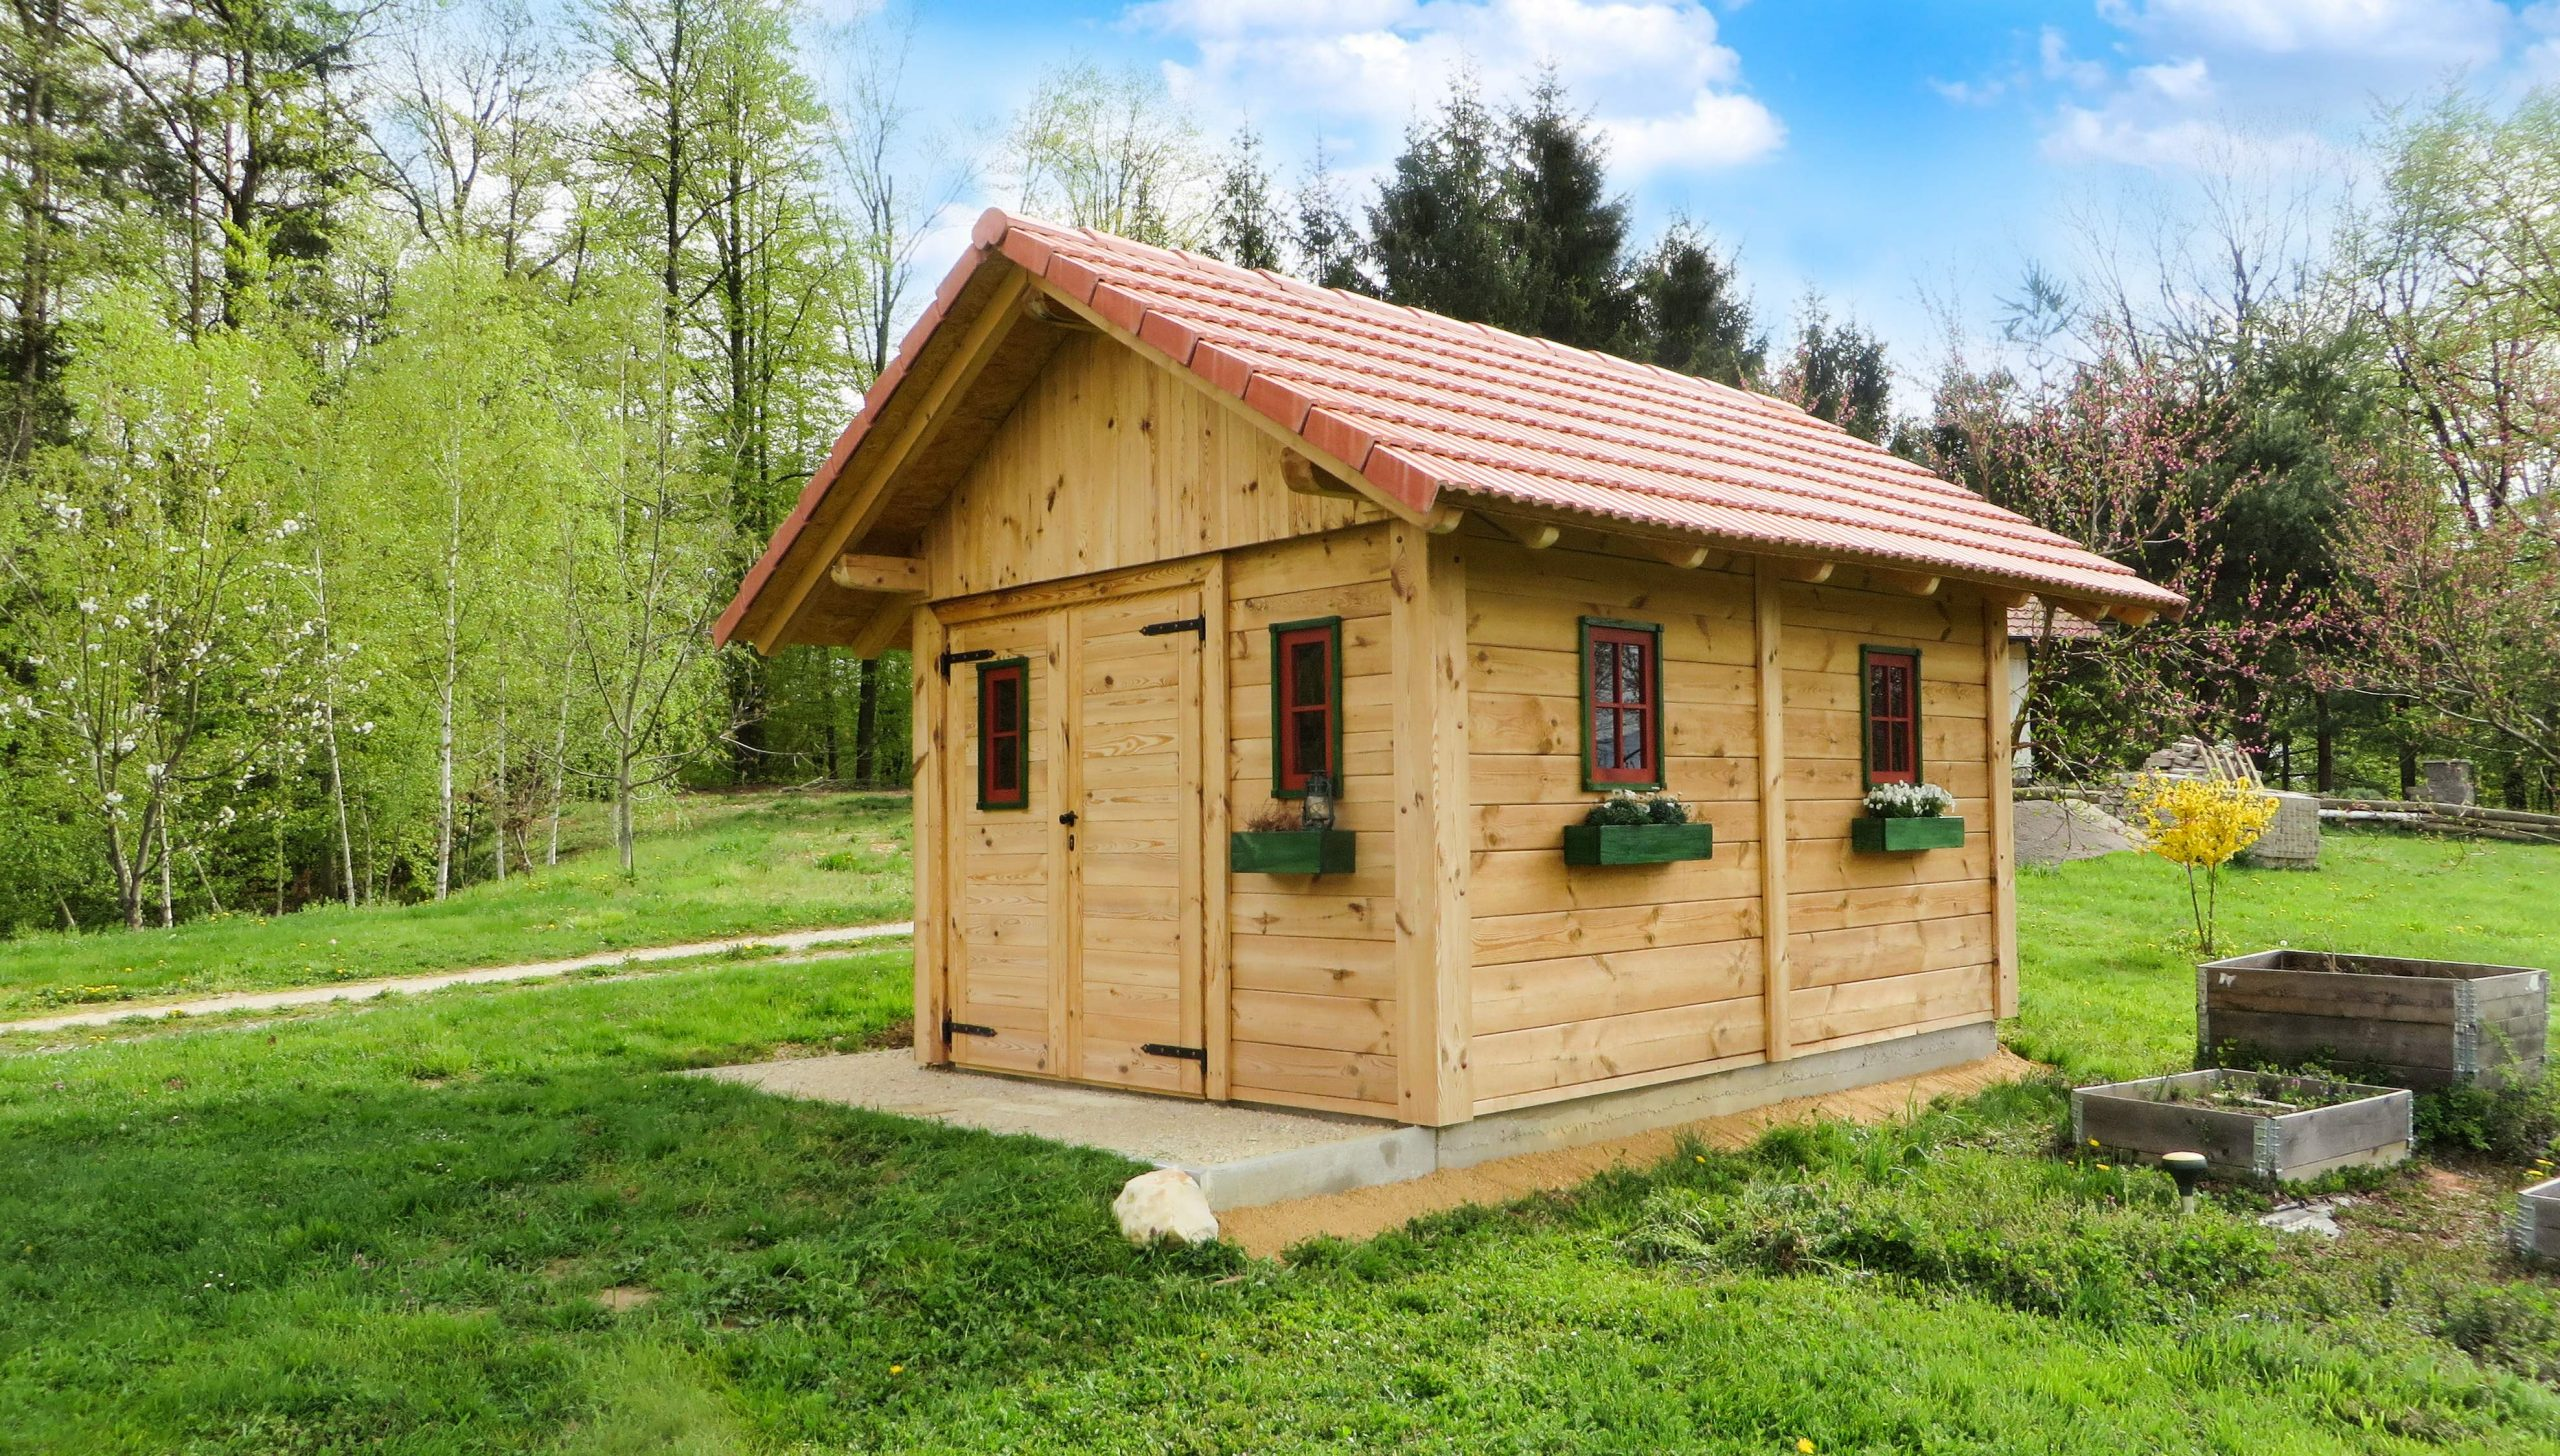 garden house shed chalet log cabin house hut pxhere